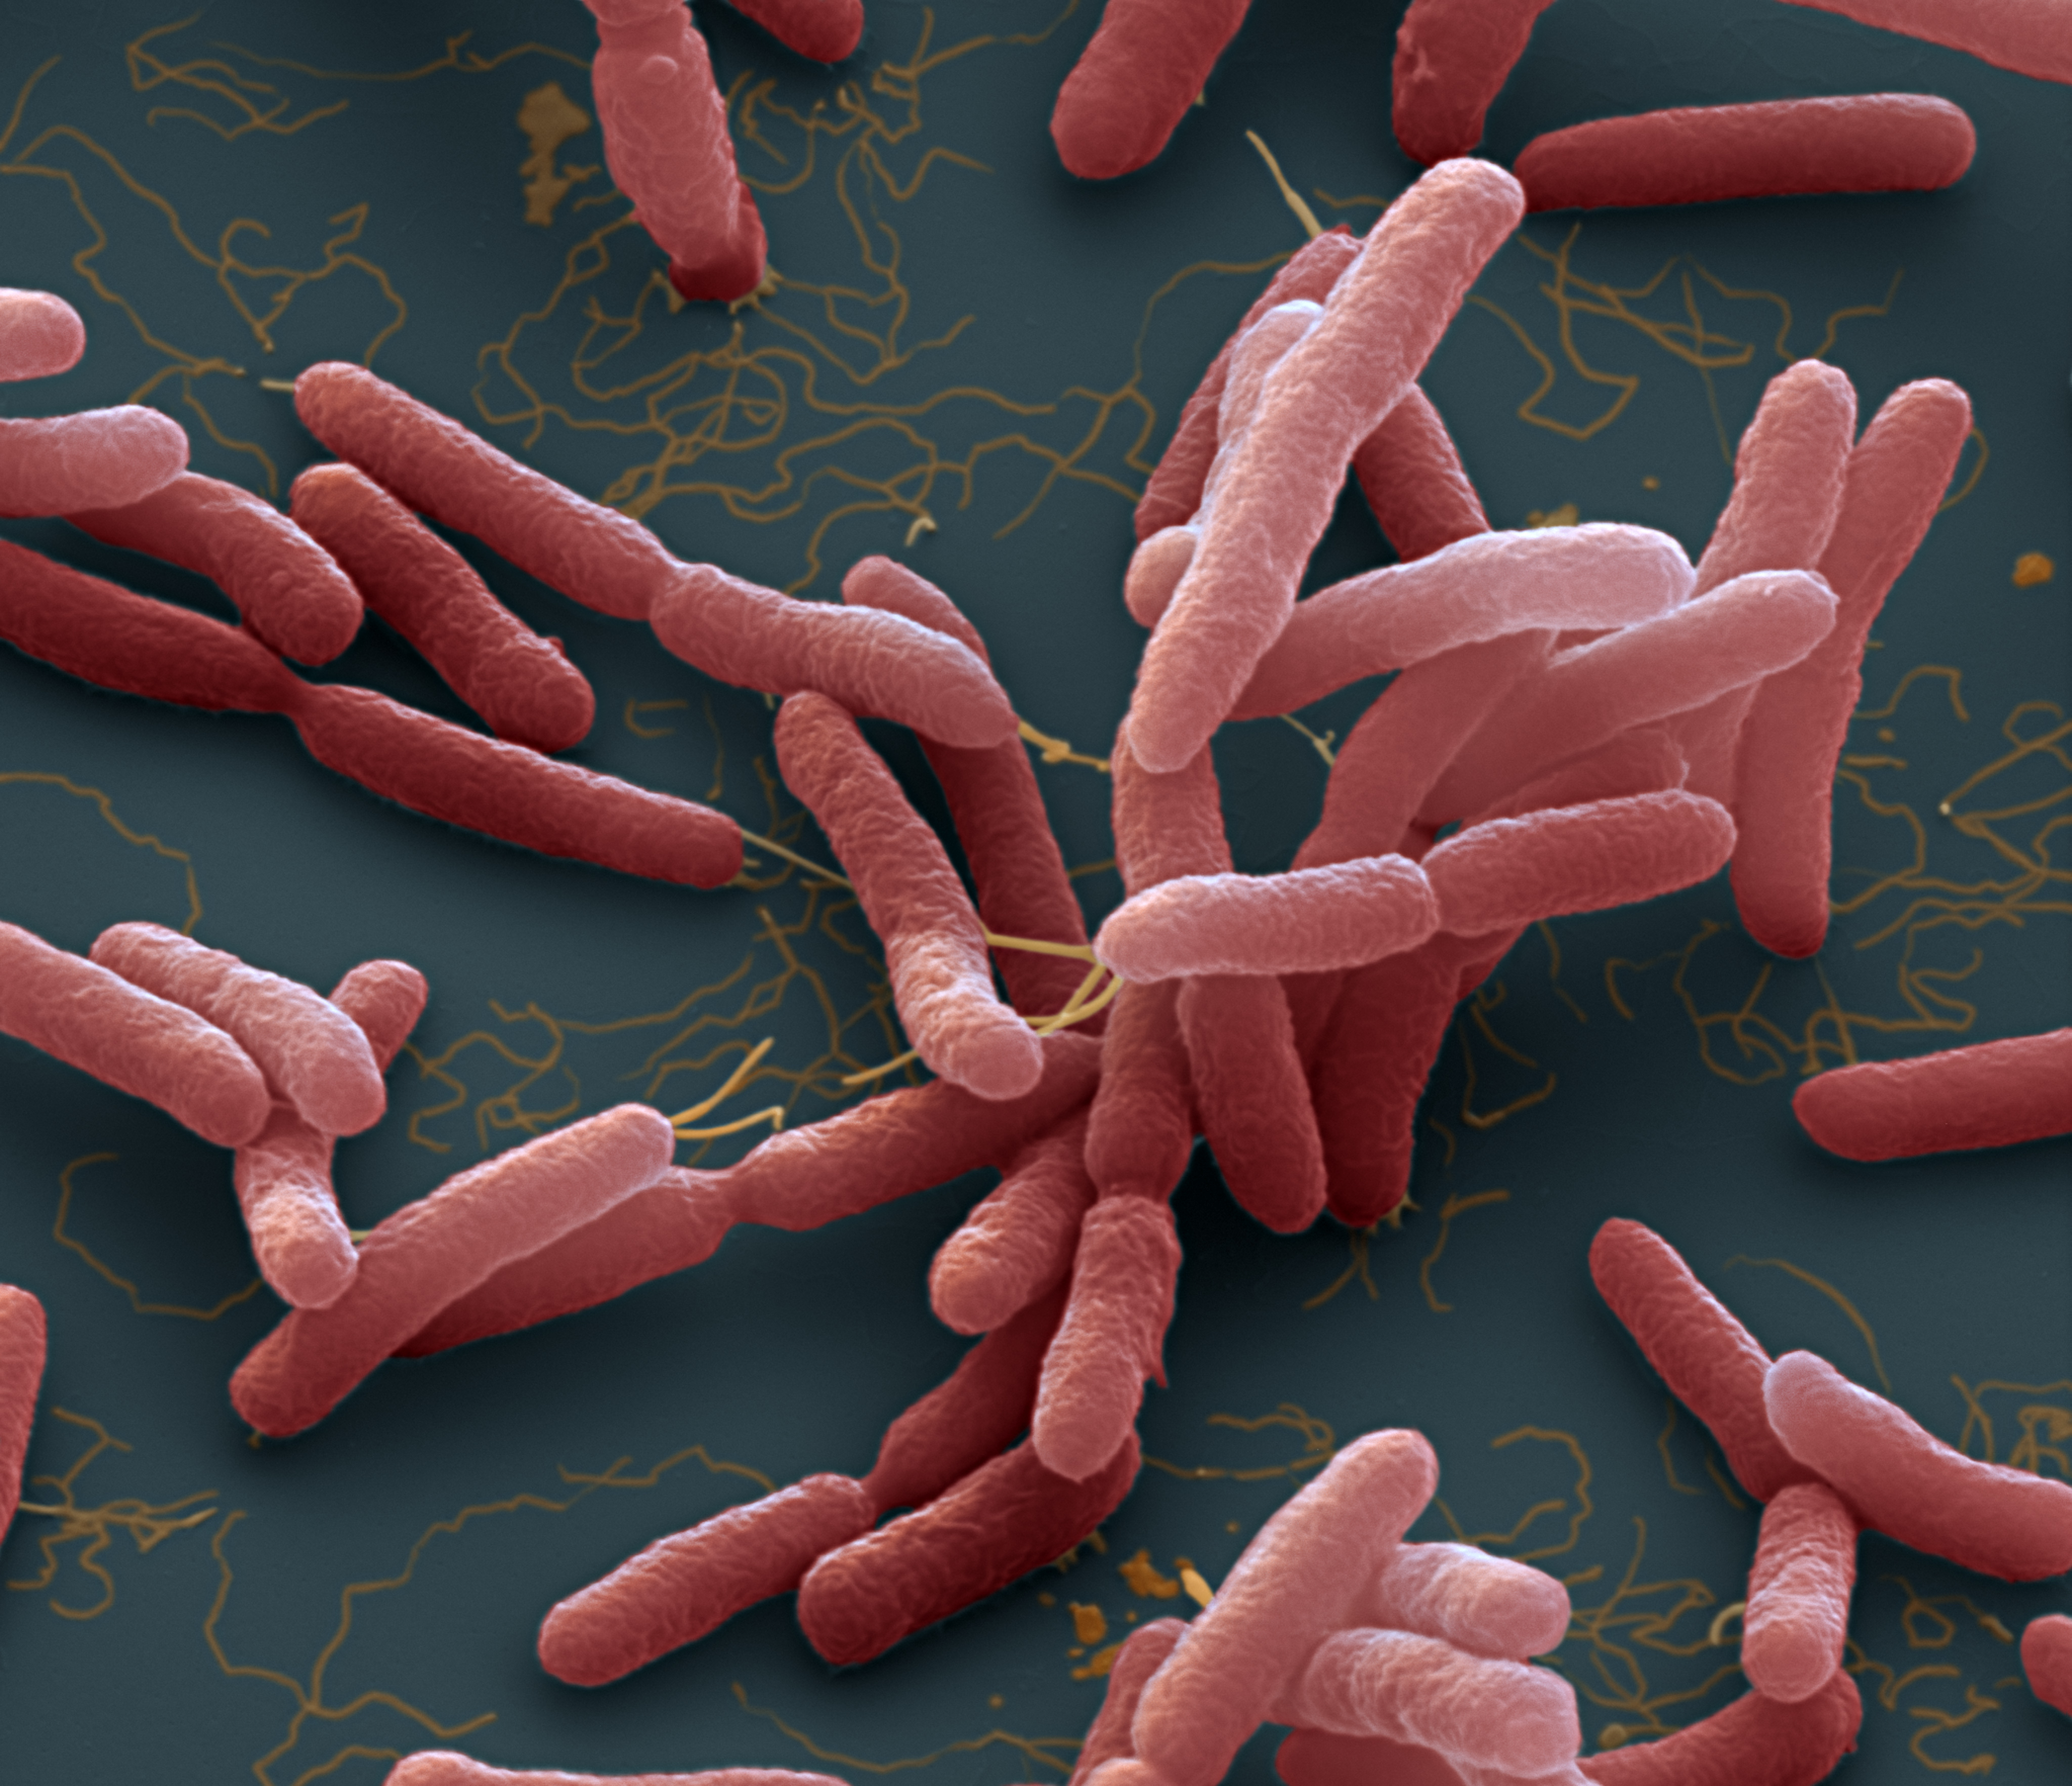 Melioidosis A Stubborn Potentially Deadly Infection Gets Attention Goats And Soda Npr